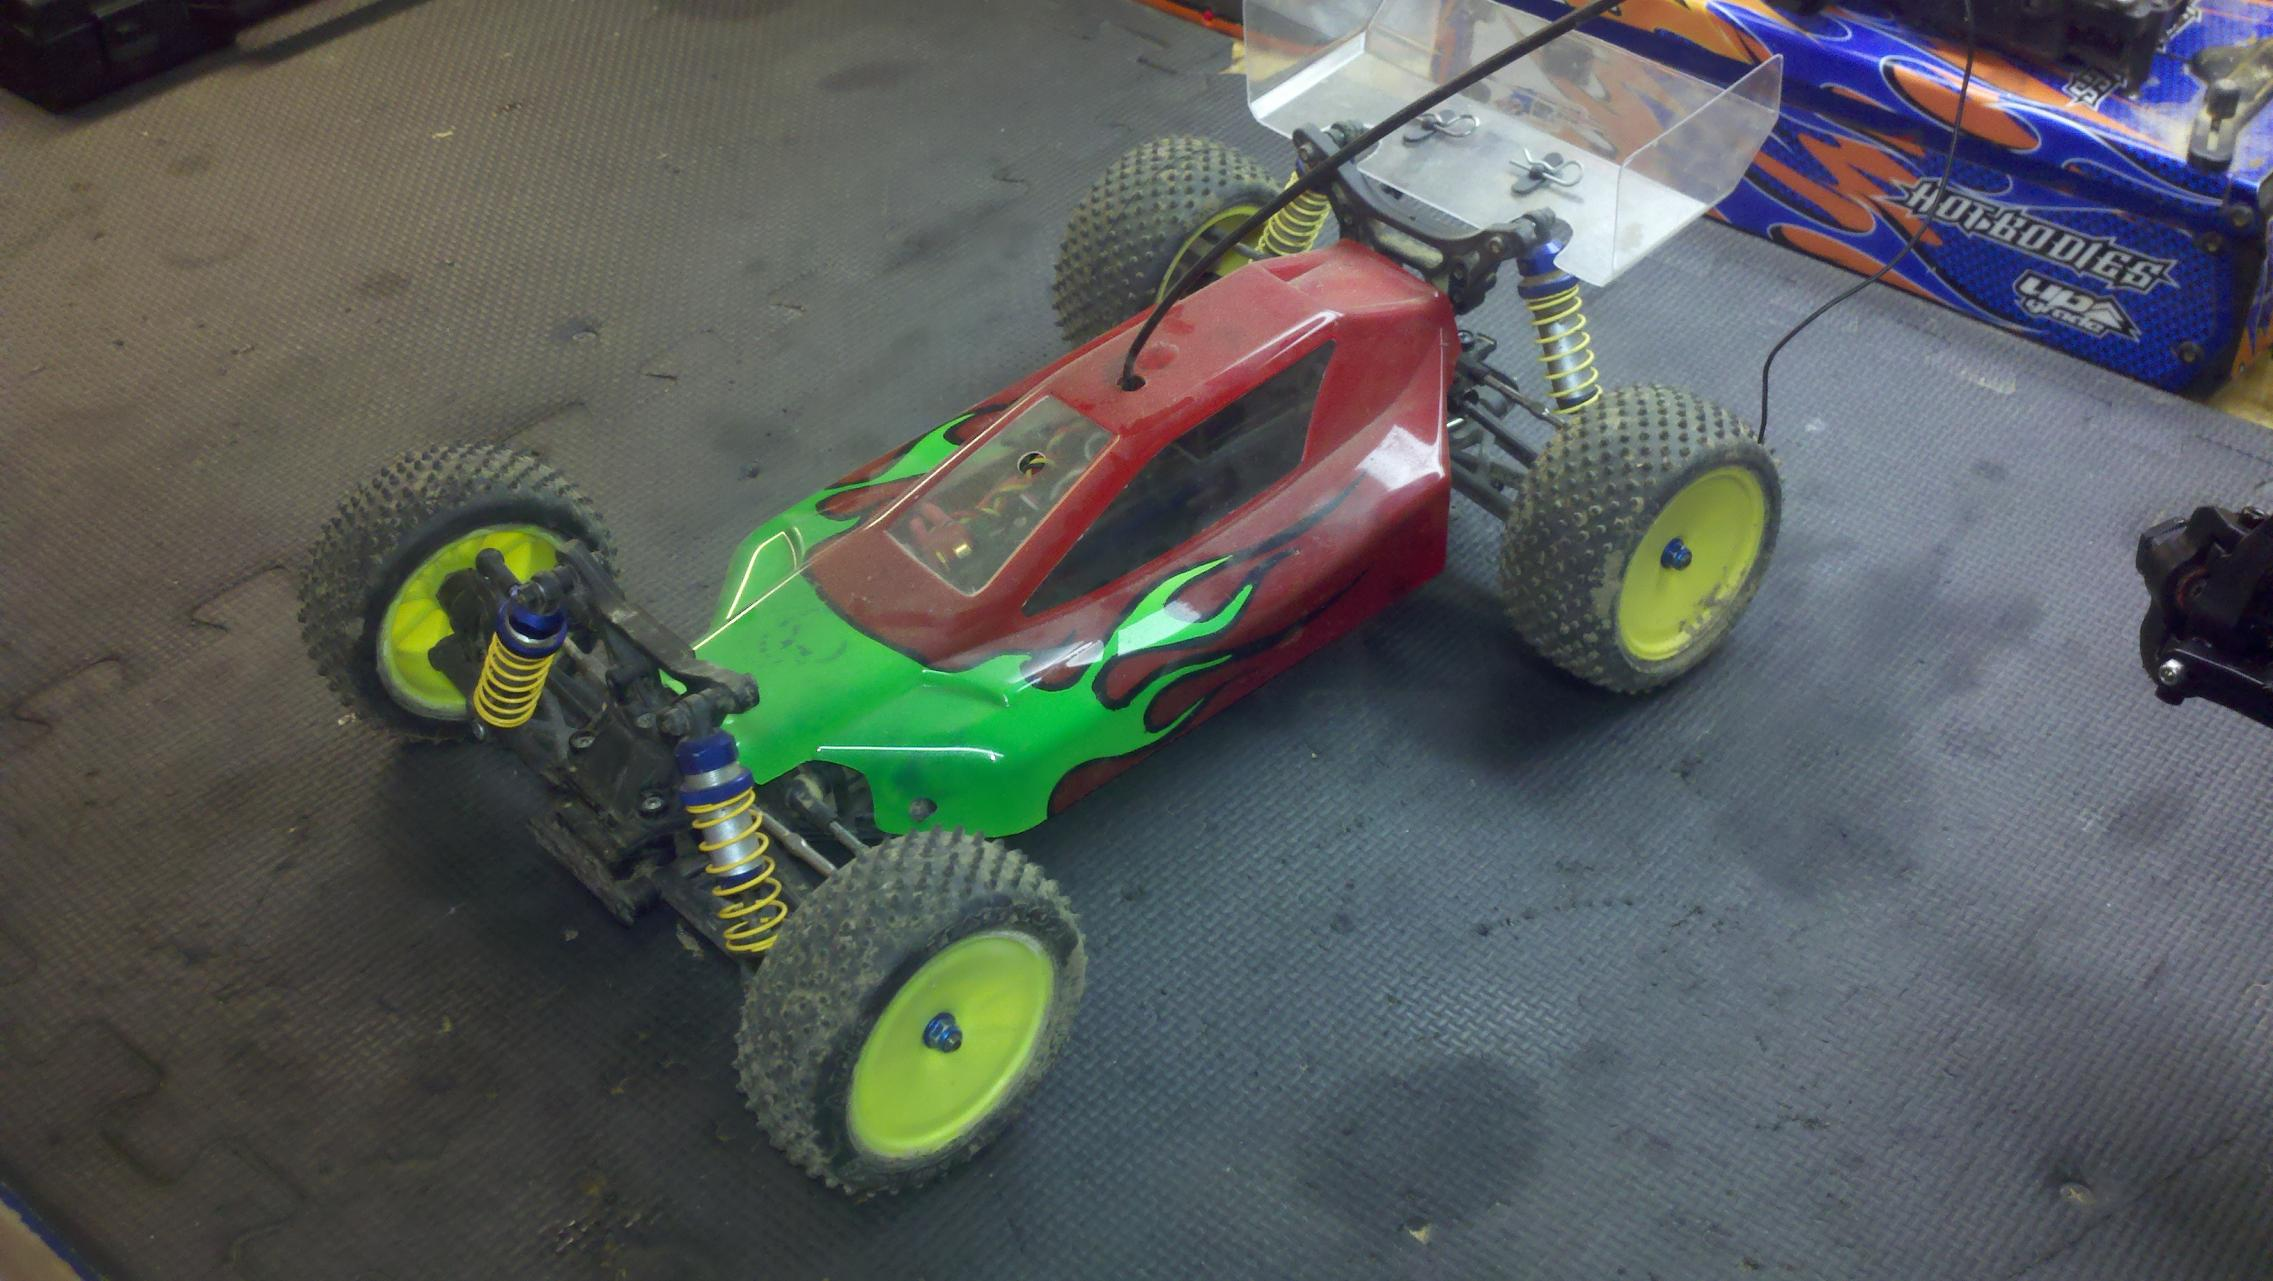 For Sale T4 39 S Kyosho Zx5 And Brushless Motors R C Tech